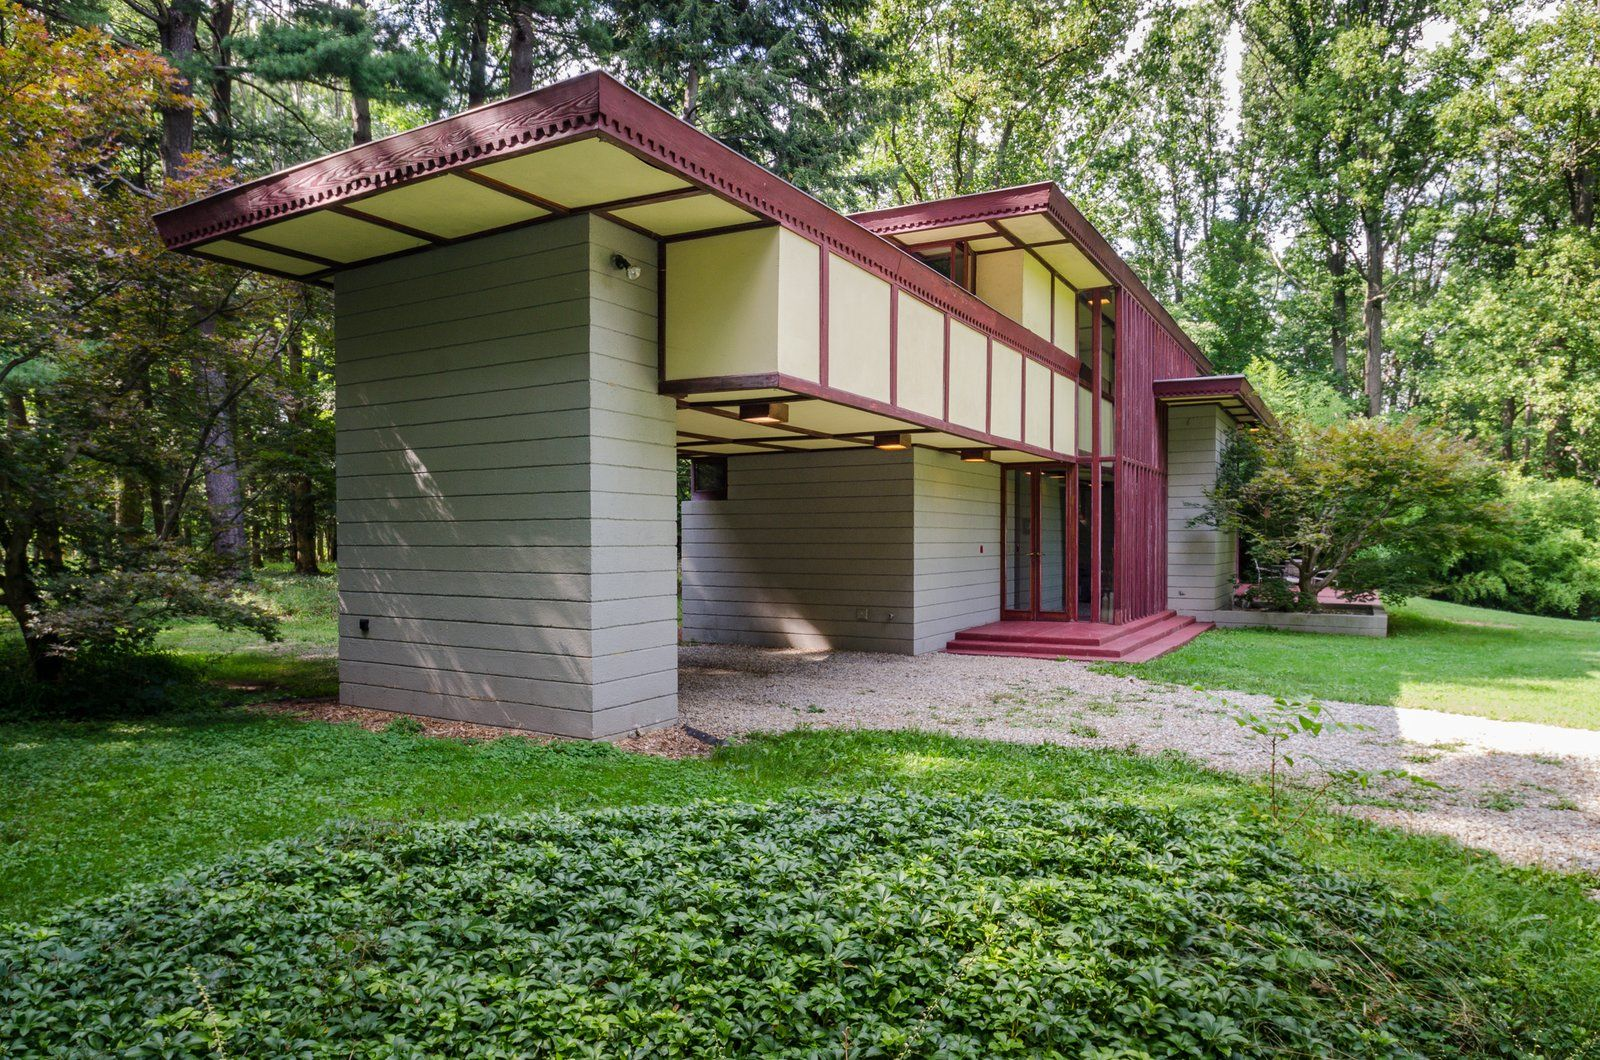 The Frank Lloyd Wright Designed Louis Penfield House In Ohio Is For Sale For 1 3m Lloyd Wright Frank Lloyd Wright Japanese Design